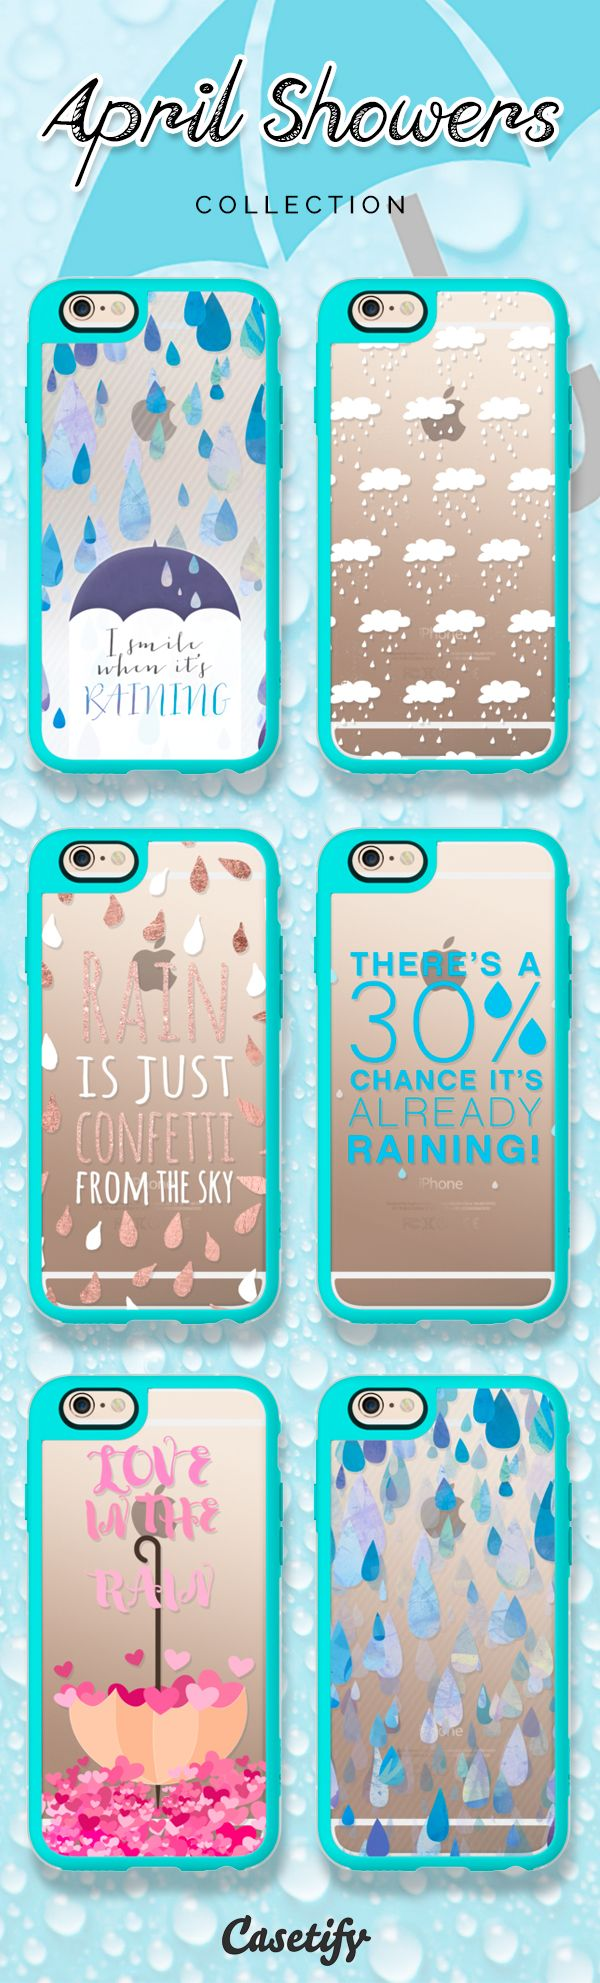 April showers bring May flowers. Take a look at these cases on our site now! https://www.casetify.com/artworks/Fc3o1vfMUW | @casetify